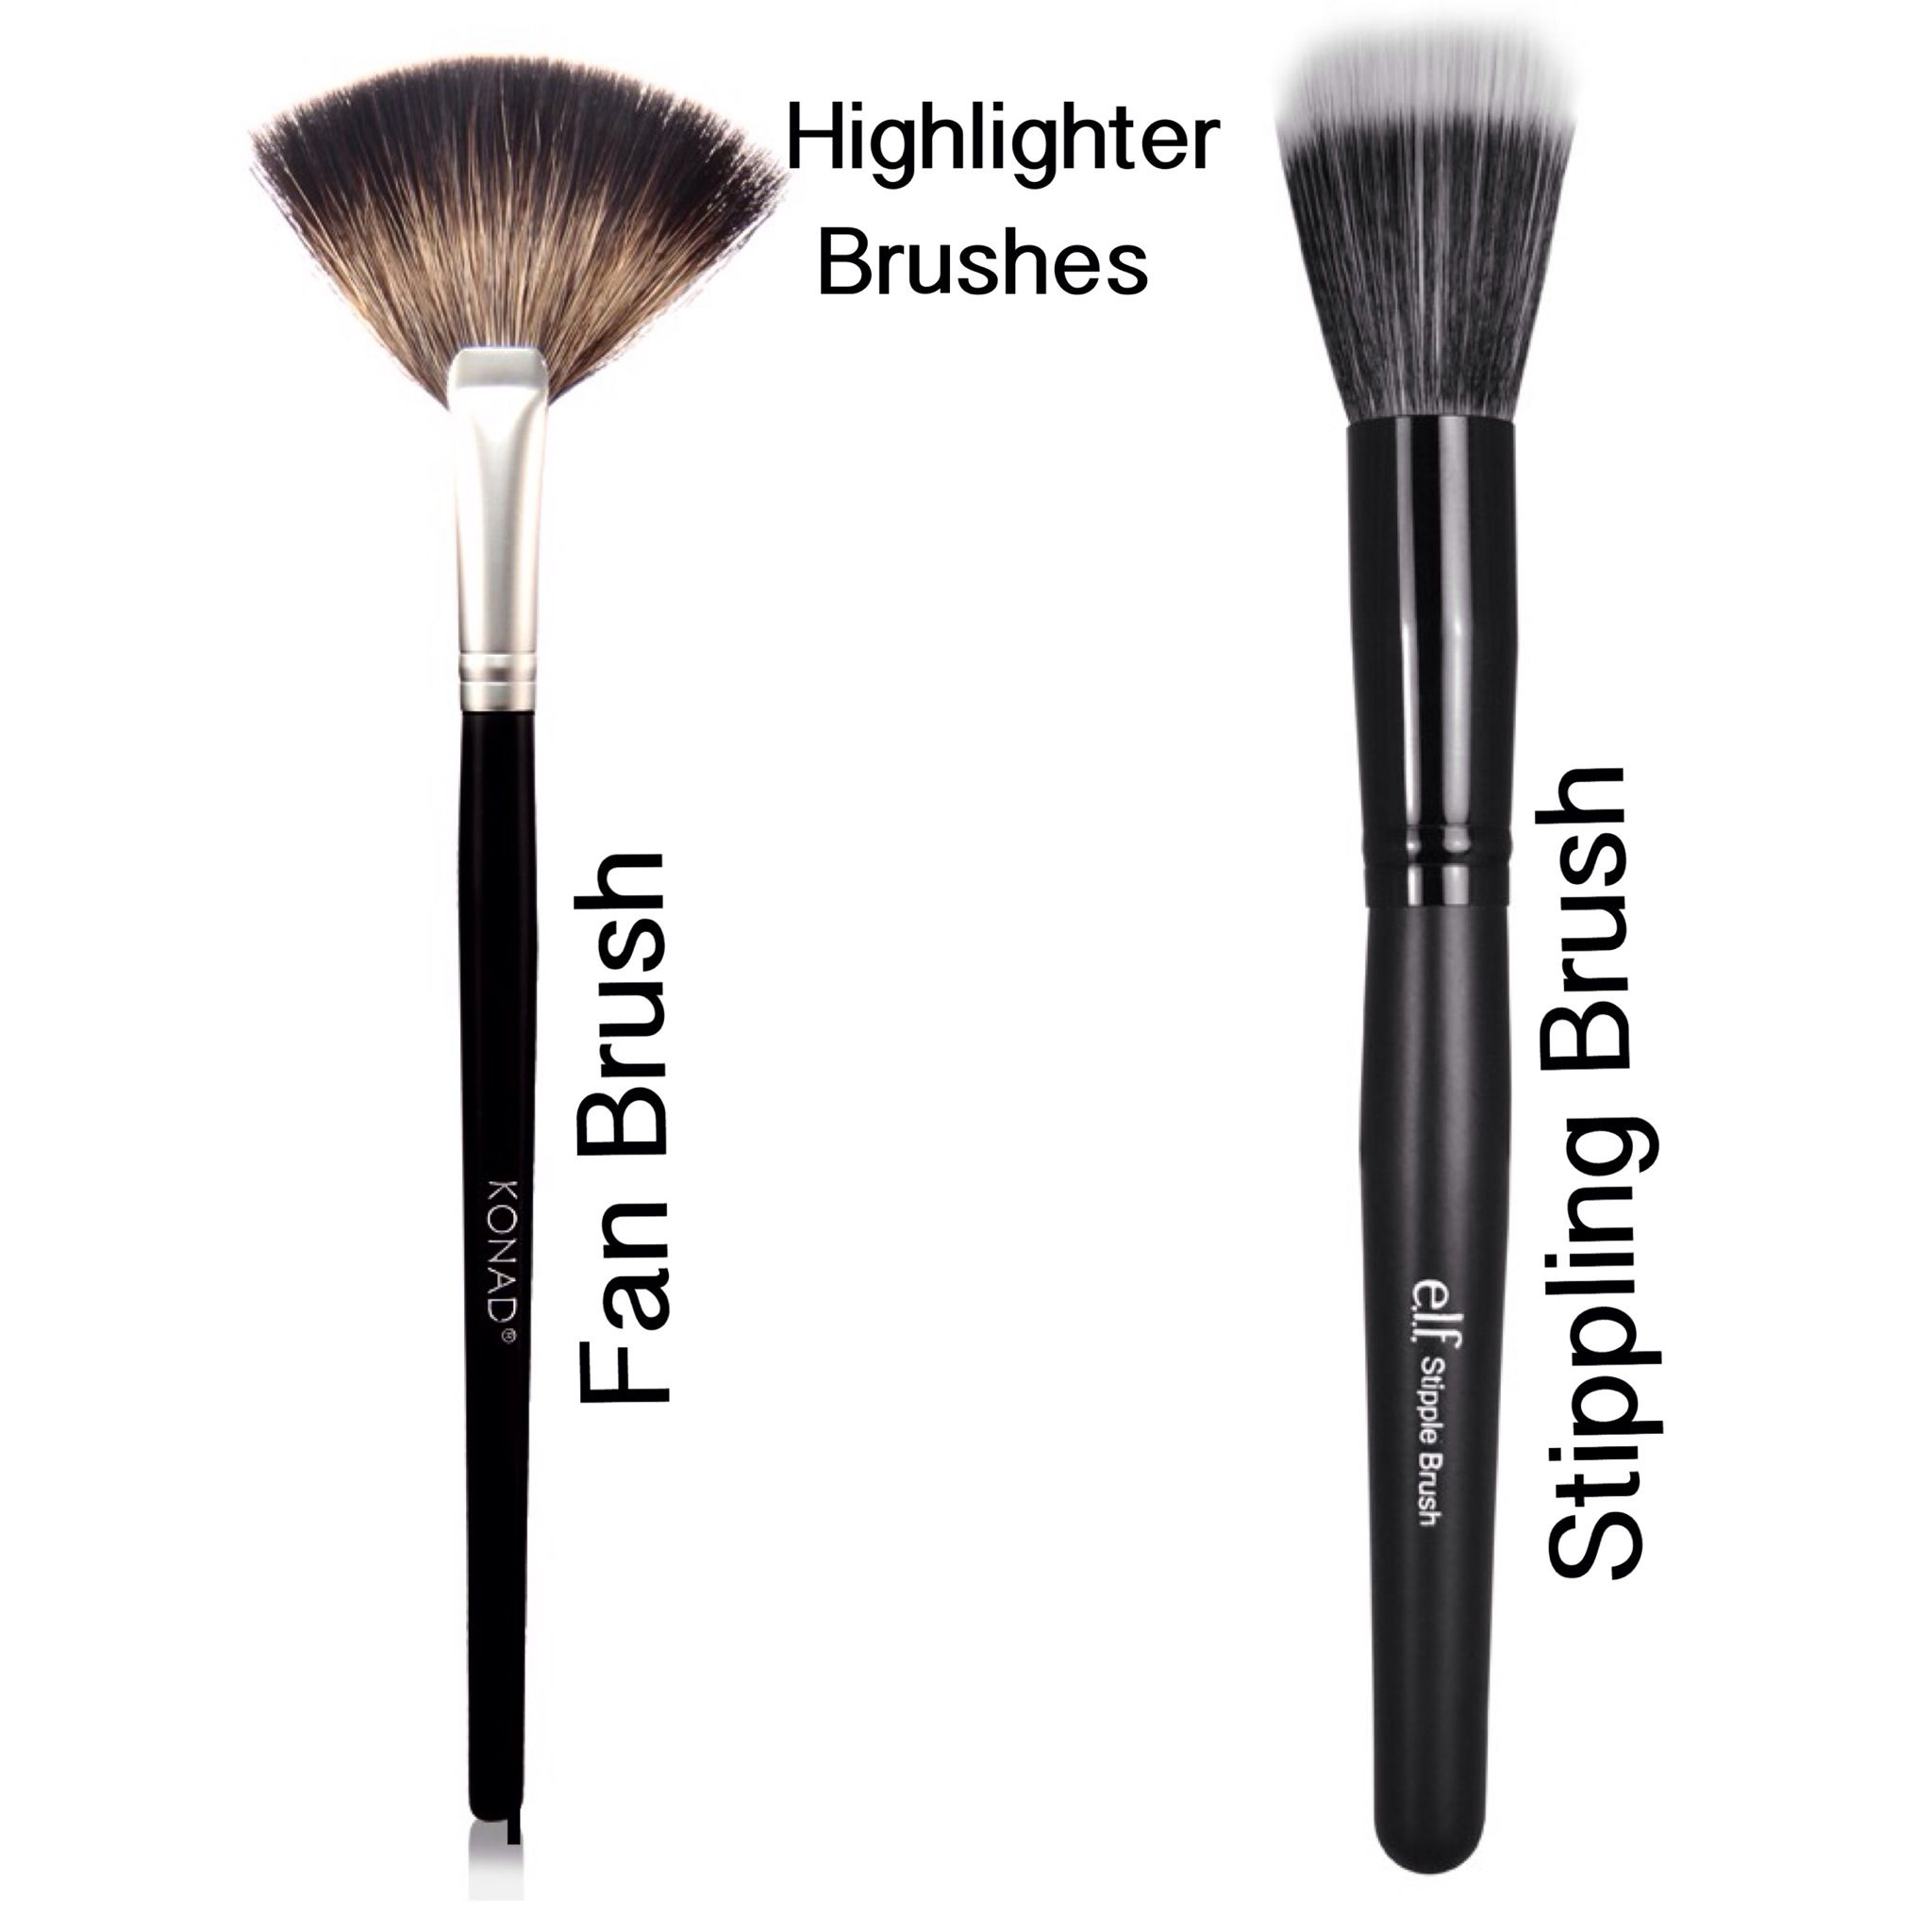 5 AREAS WHERE TO APPLY YOUR HIGHLIGHTER (With images